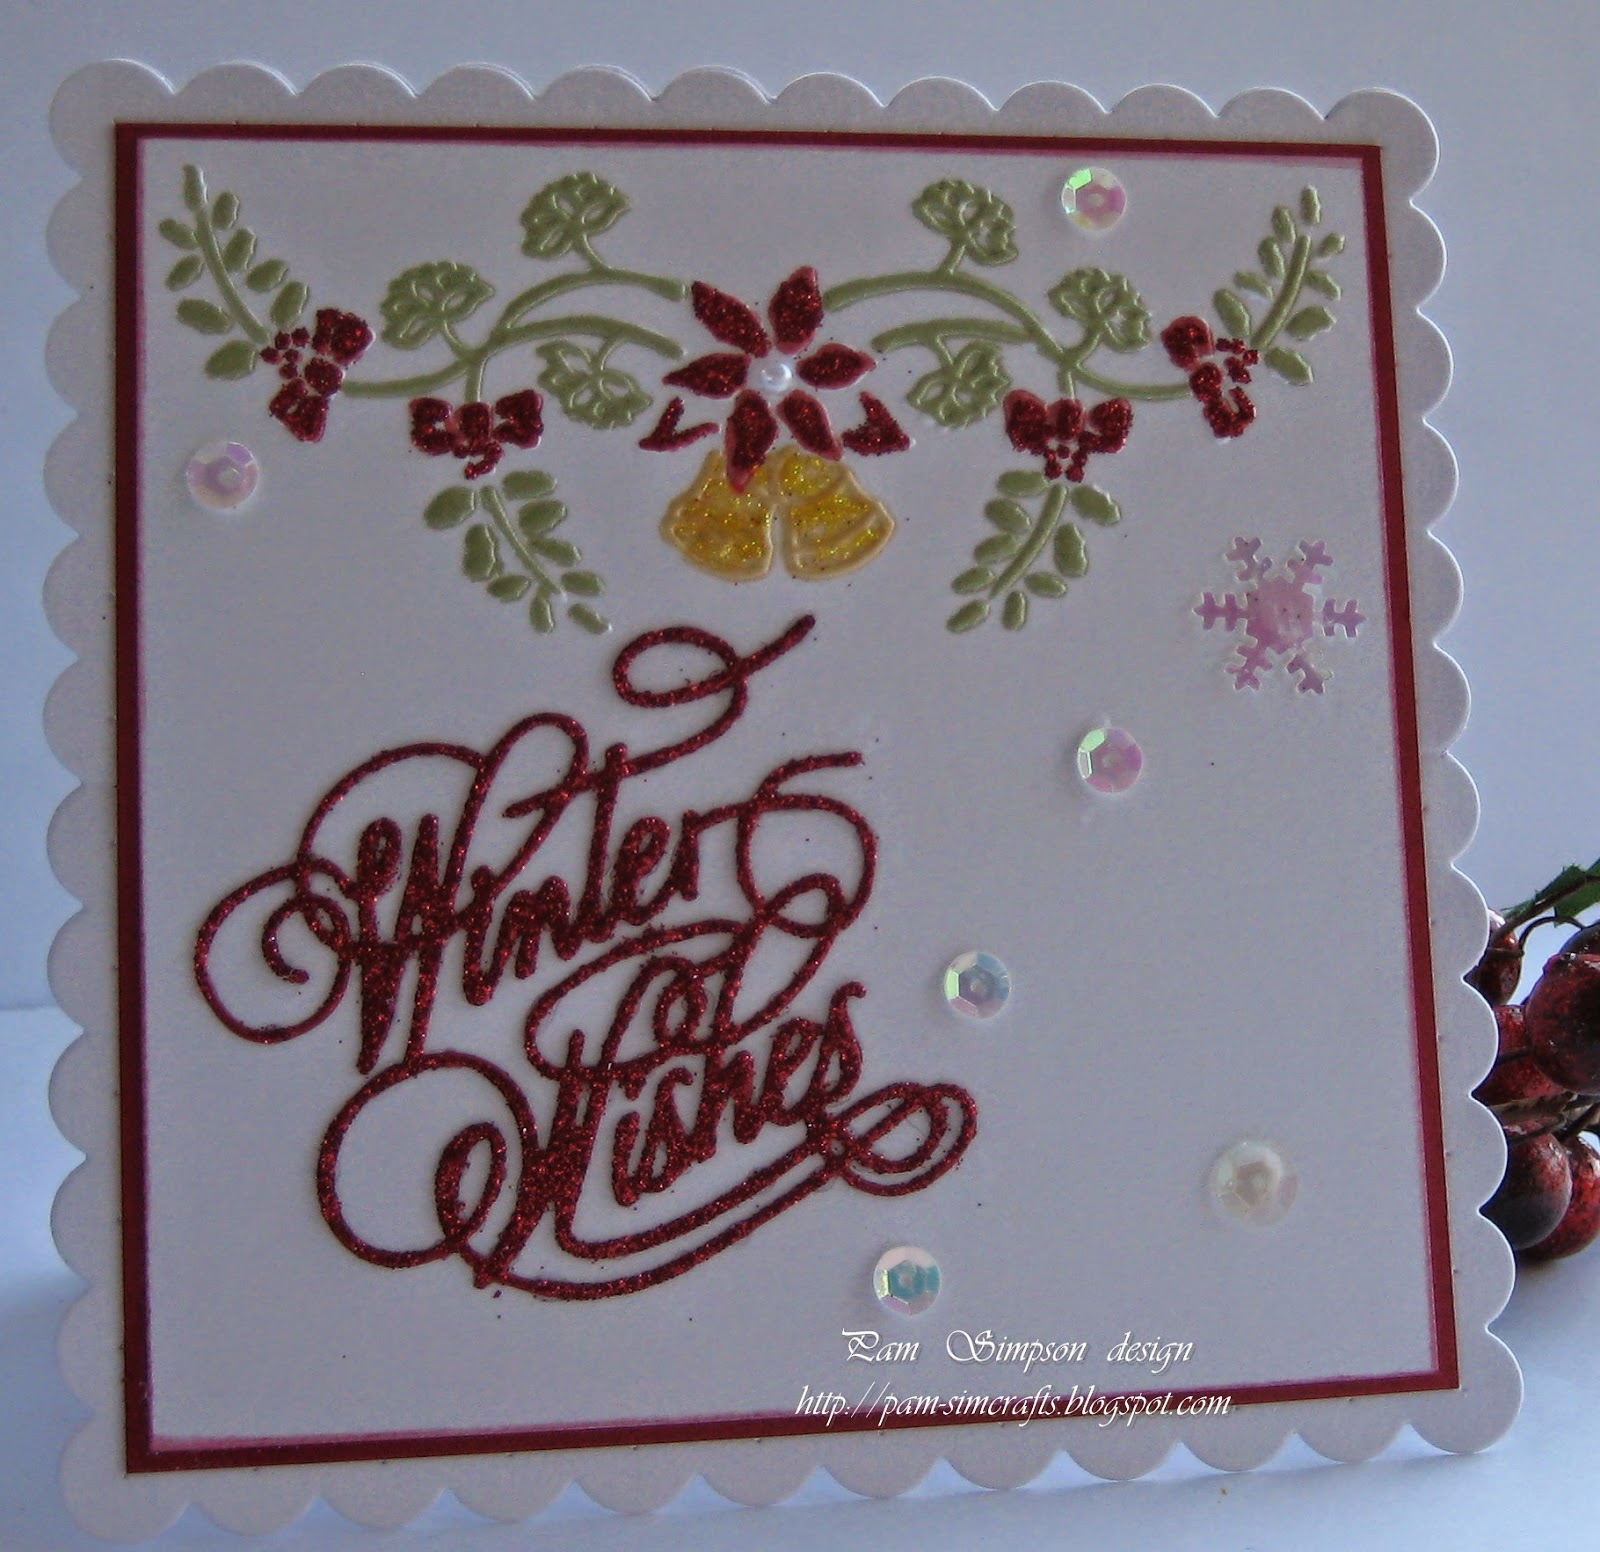 pamscrafts: Embossed Christmas cards.